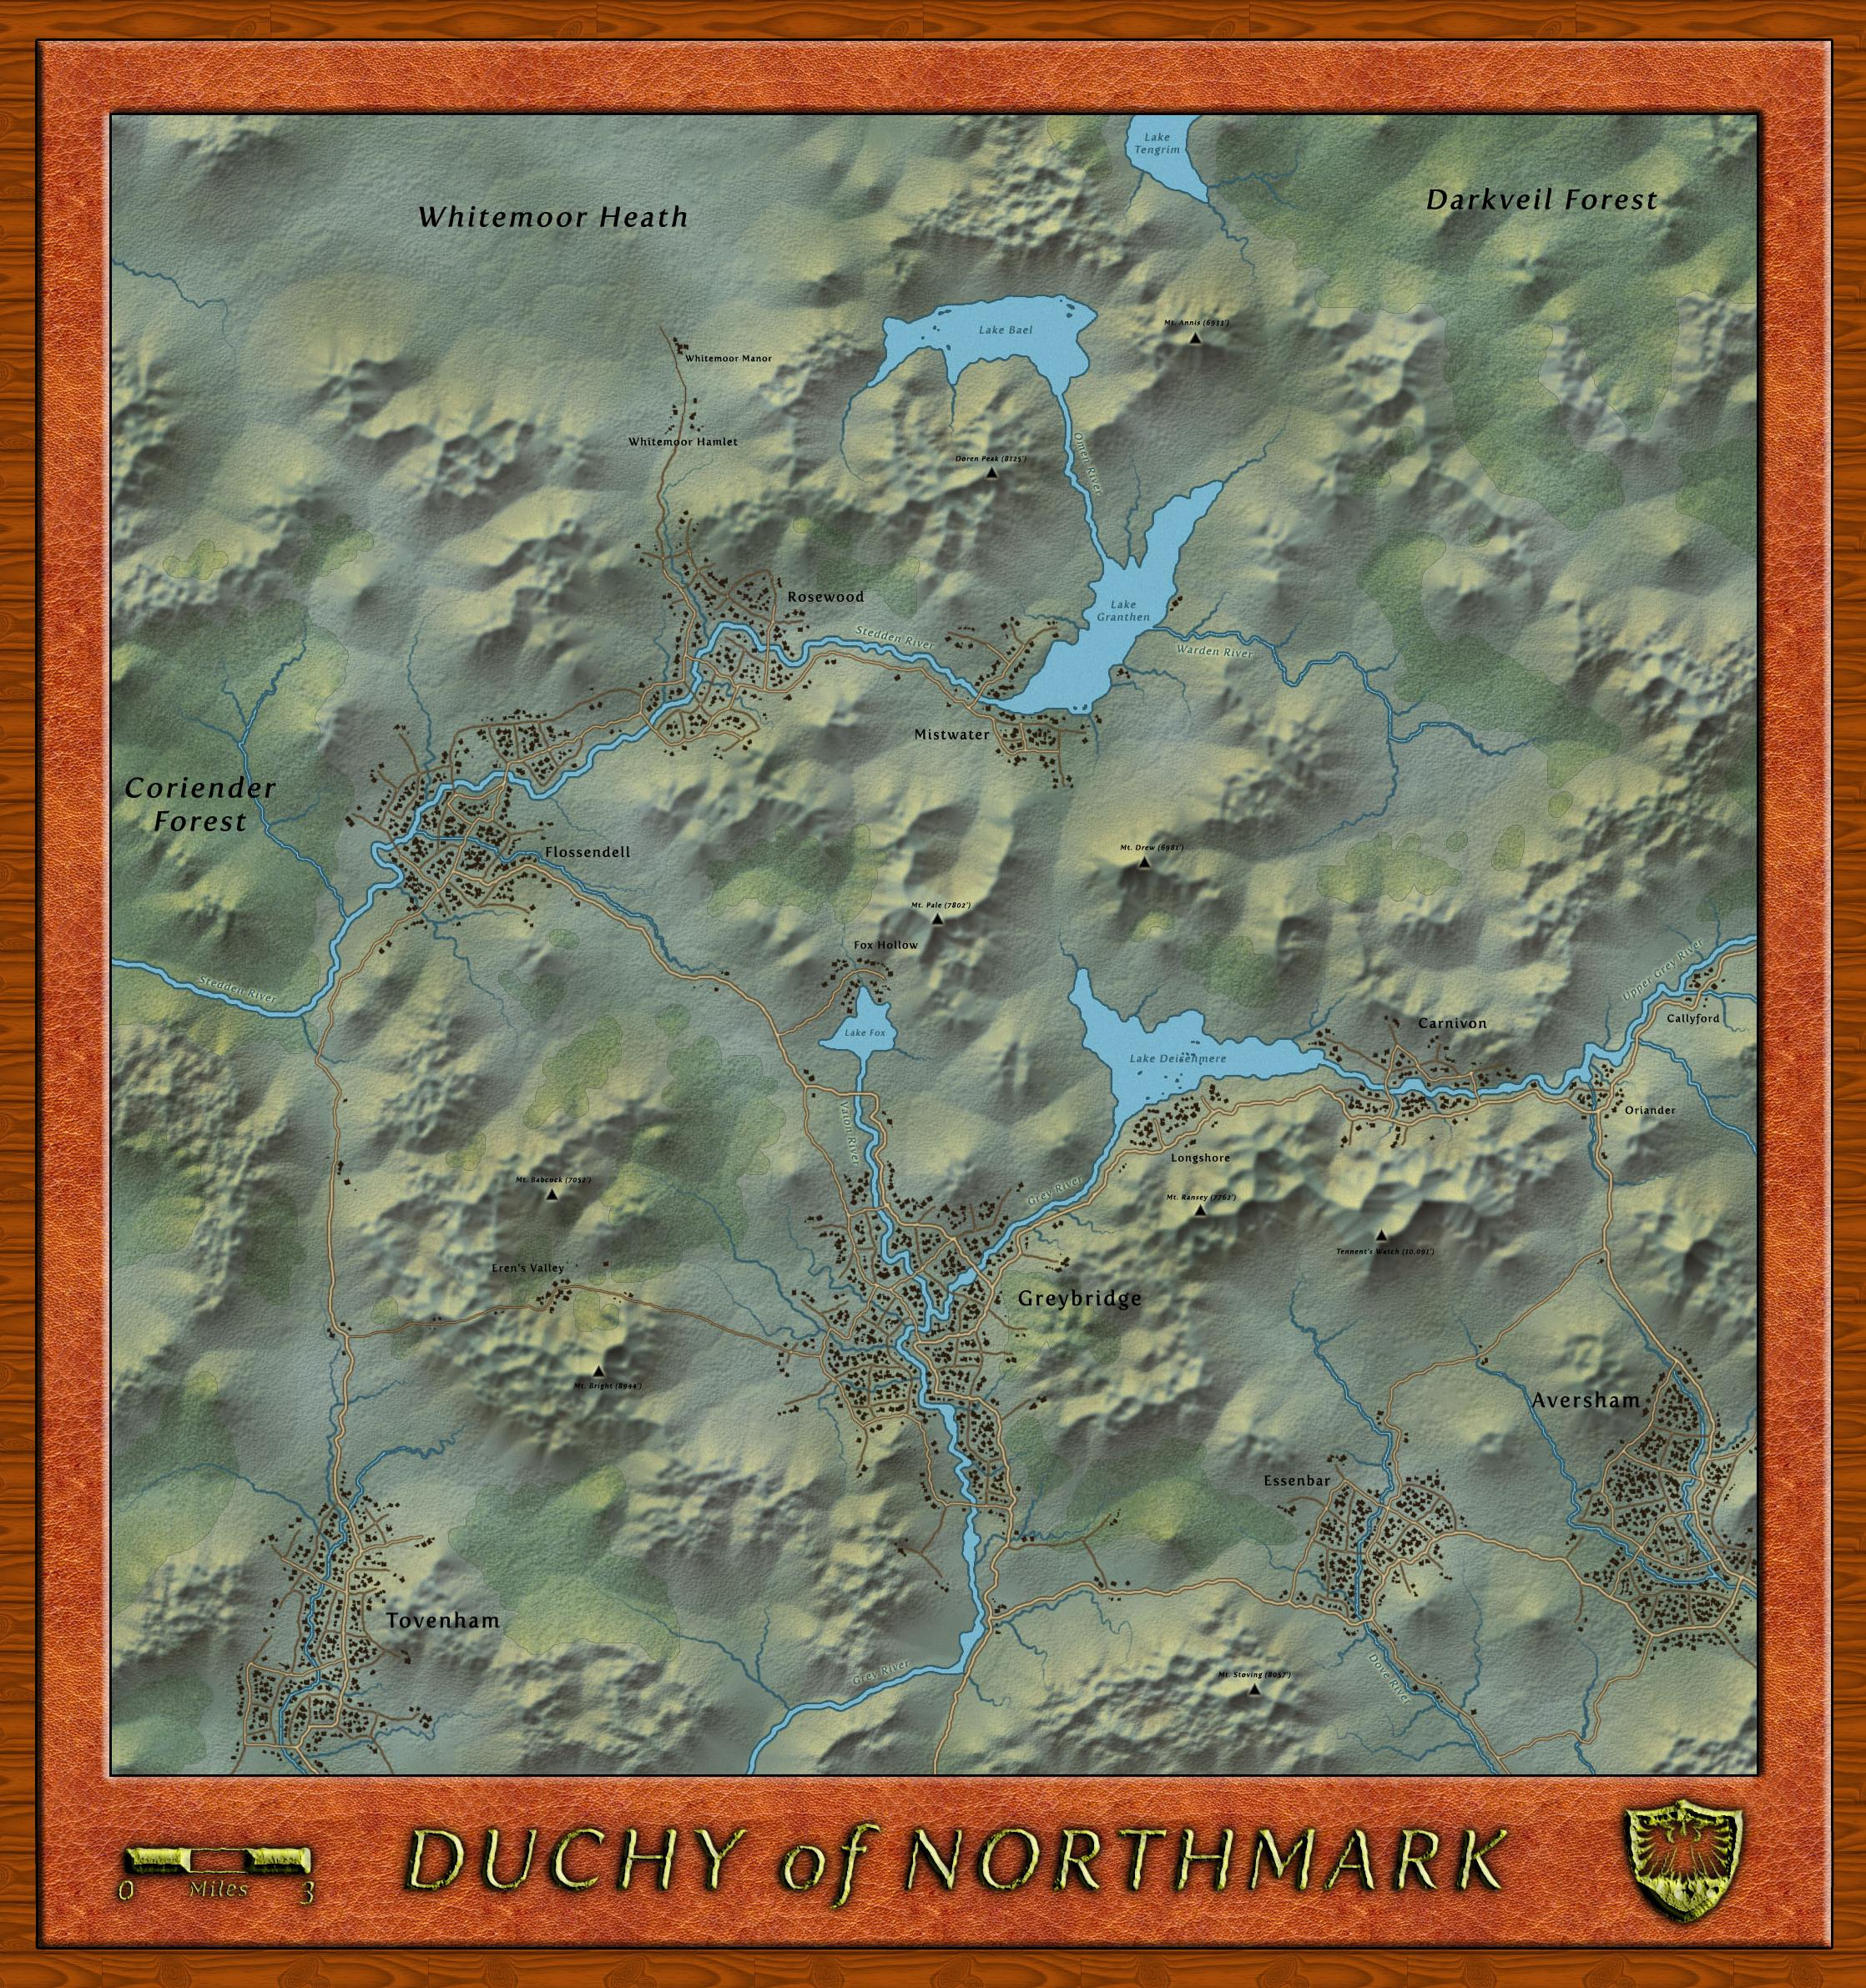 Northmark